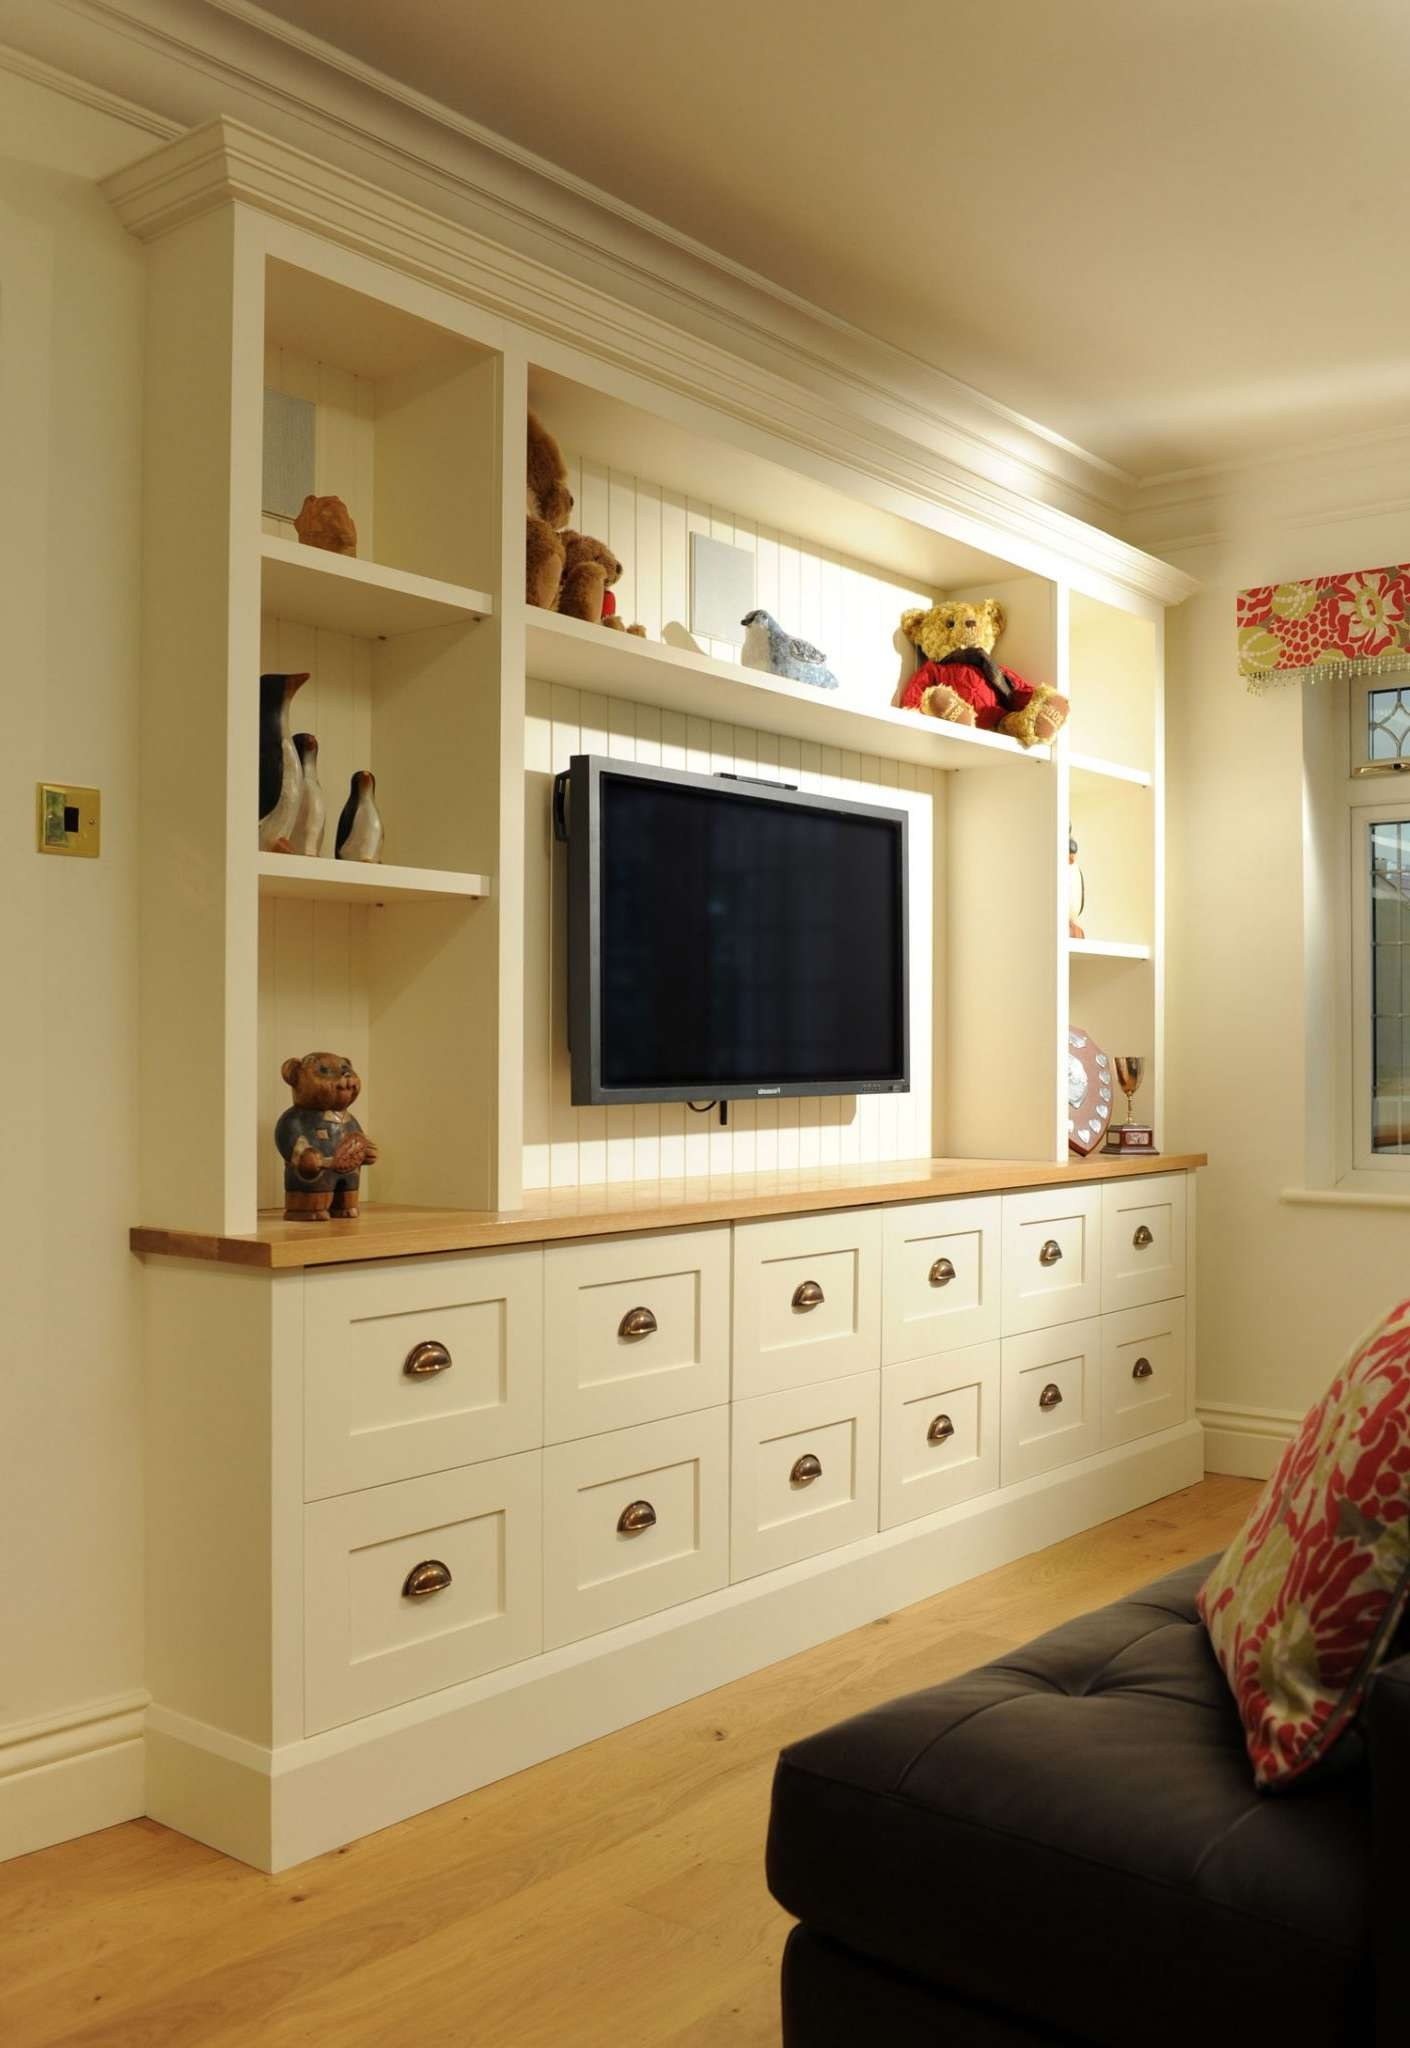 Bespoke Tv Units & Media Cabinets Custom Madehand – James Mayor Inside Bespoke Tv Cabinets (View 4 of 20)